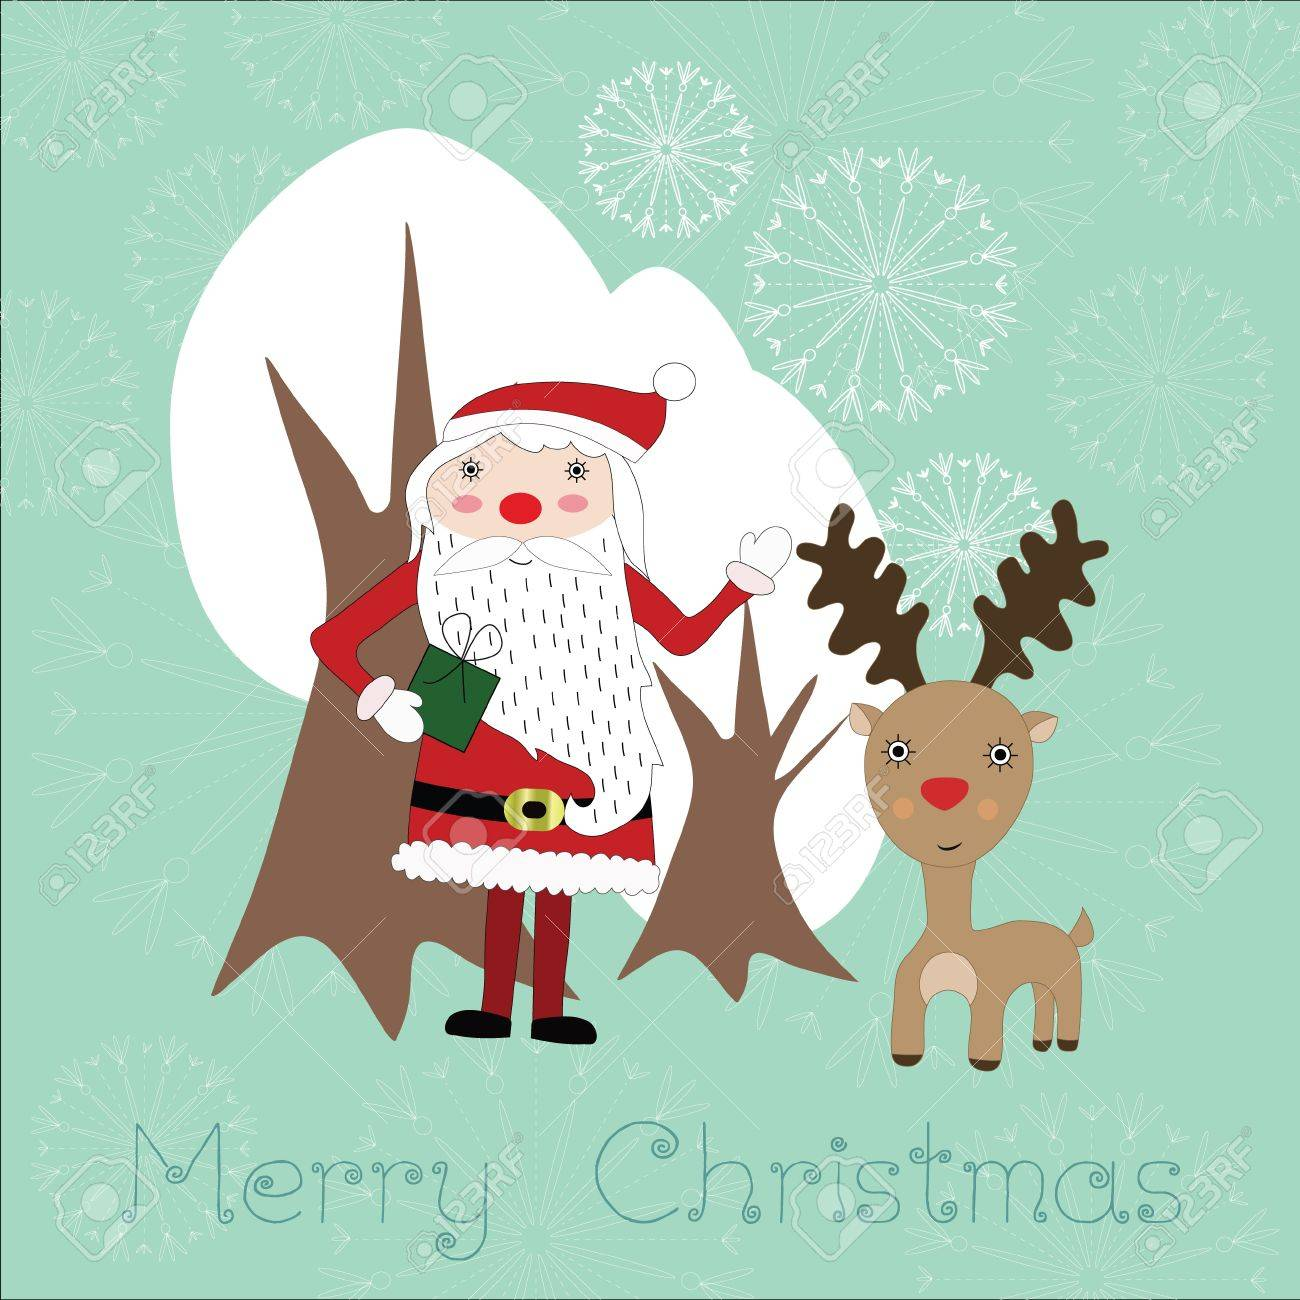 Cute Christmas card with Santaclaus, reindeer, snowflakes and white trees Stock Vector - 16587094